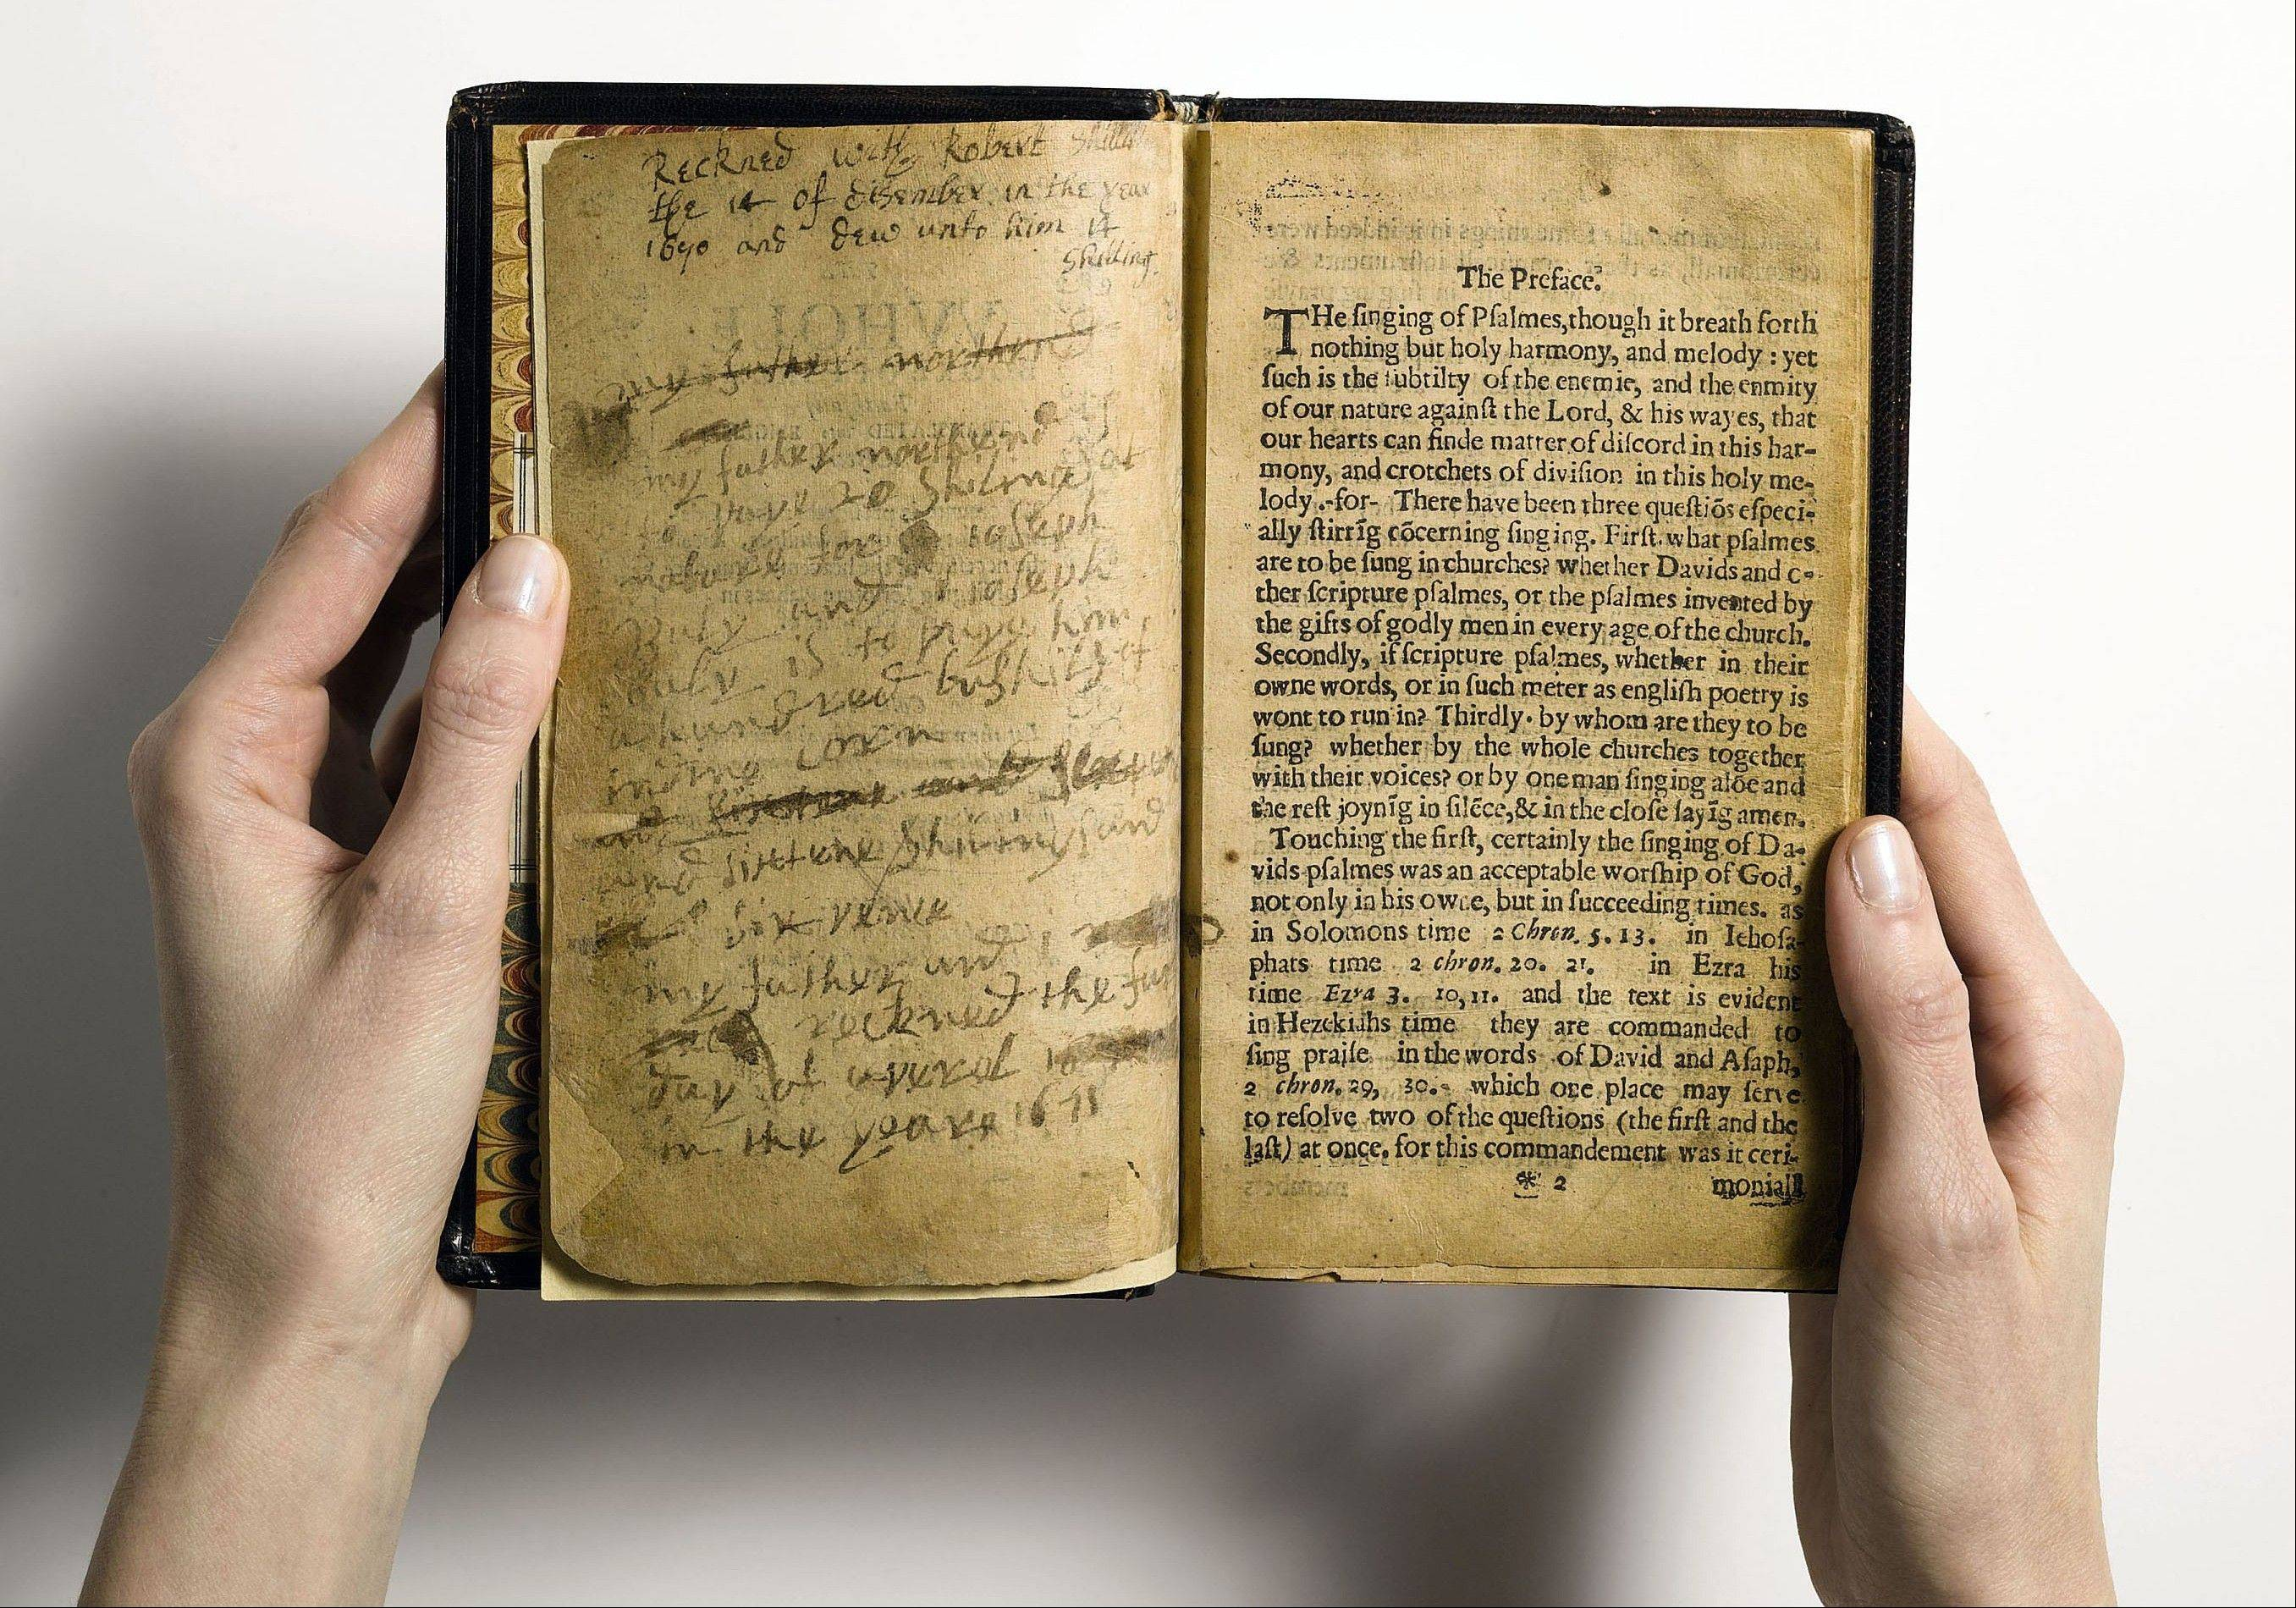 The first edition of the resulting Bay Psalm Book was printed in Cambridge, Mass. in 1640. Its estimated value is $15 million to $30 million.